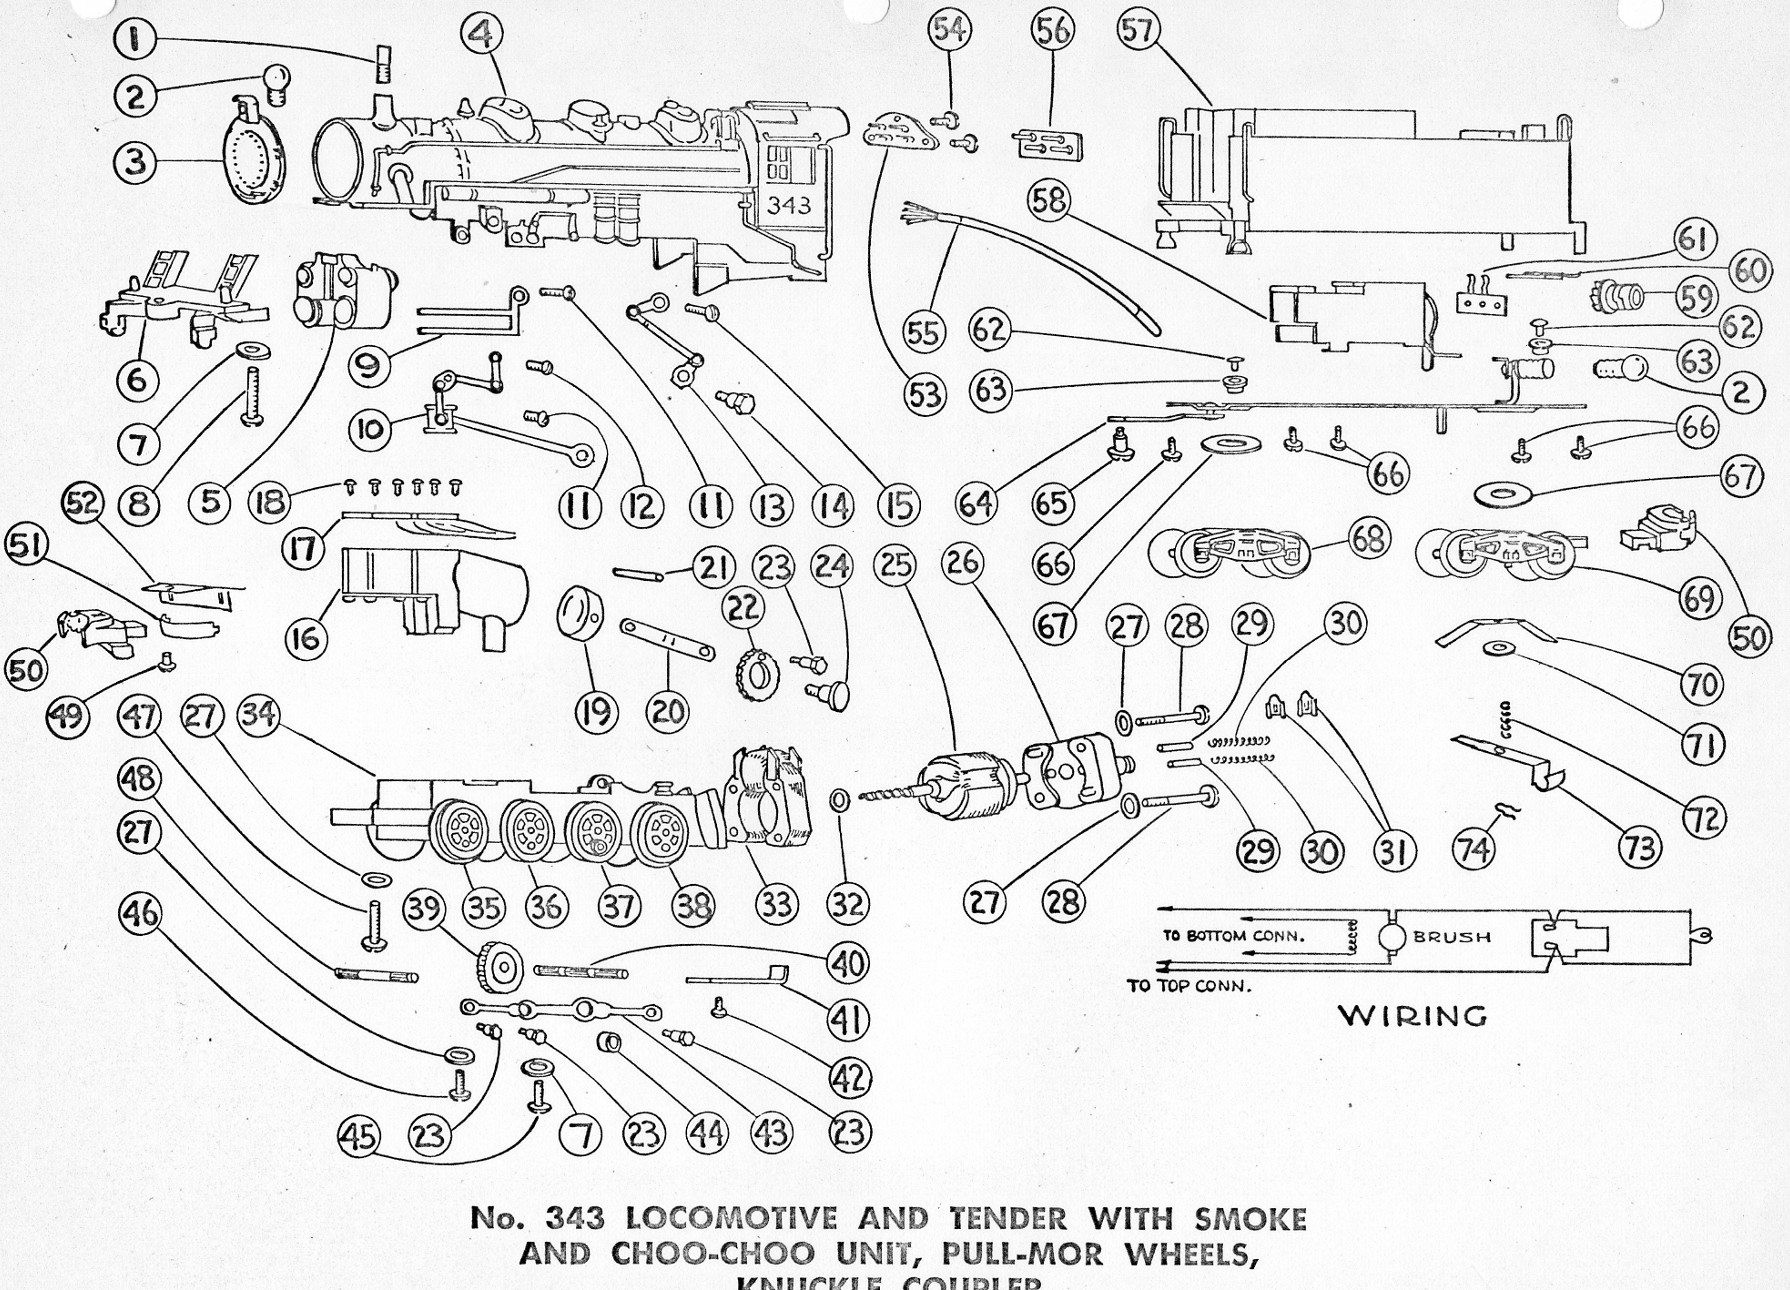 Diagram For Wiring Lionel Locomotive